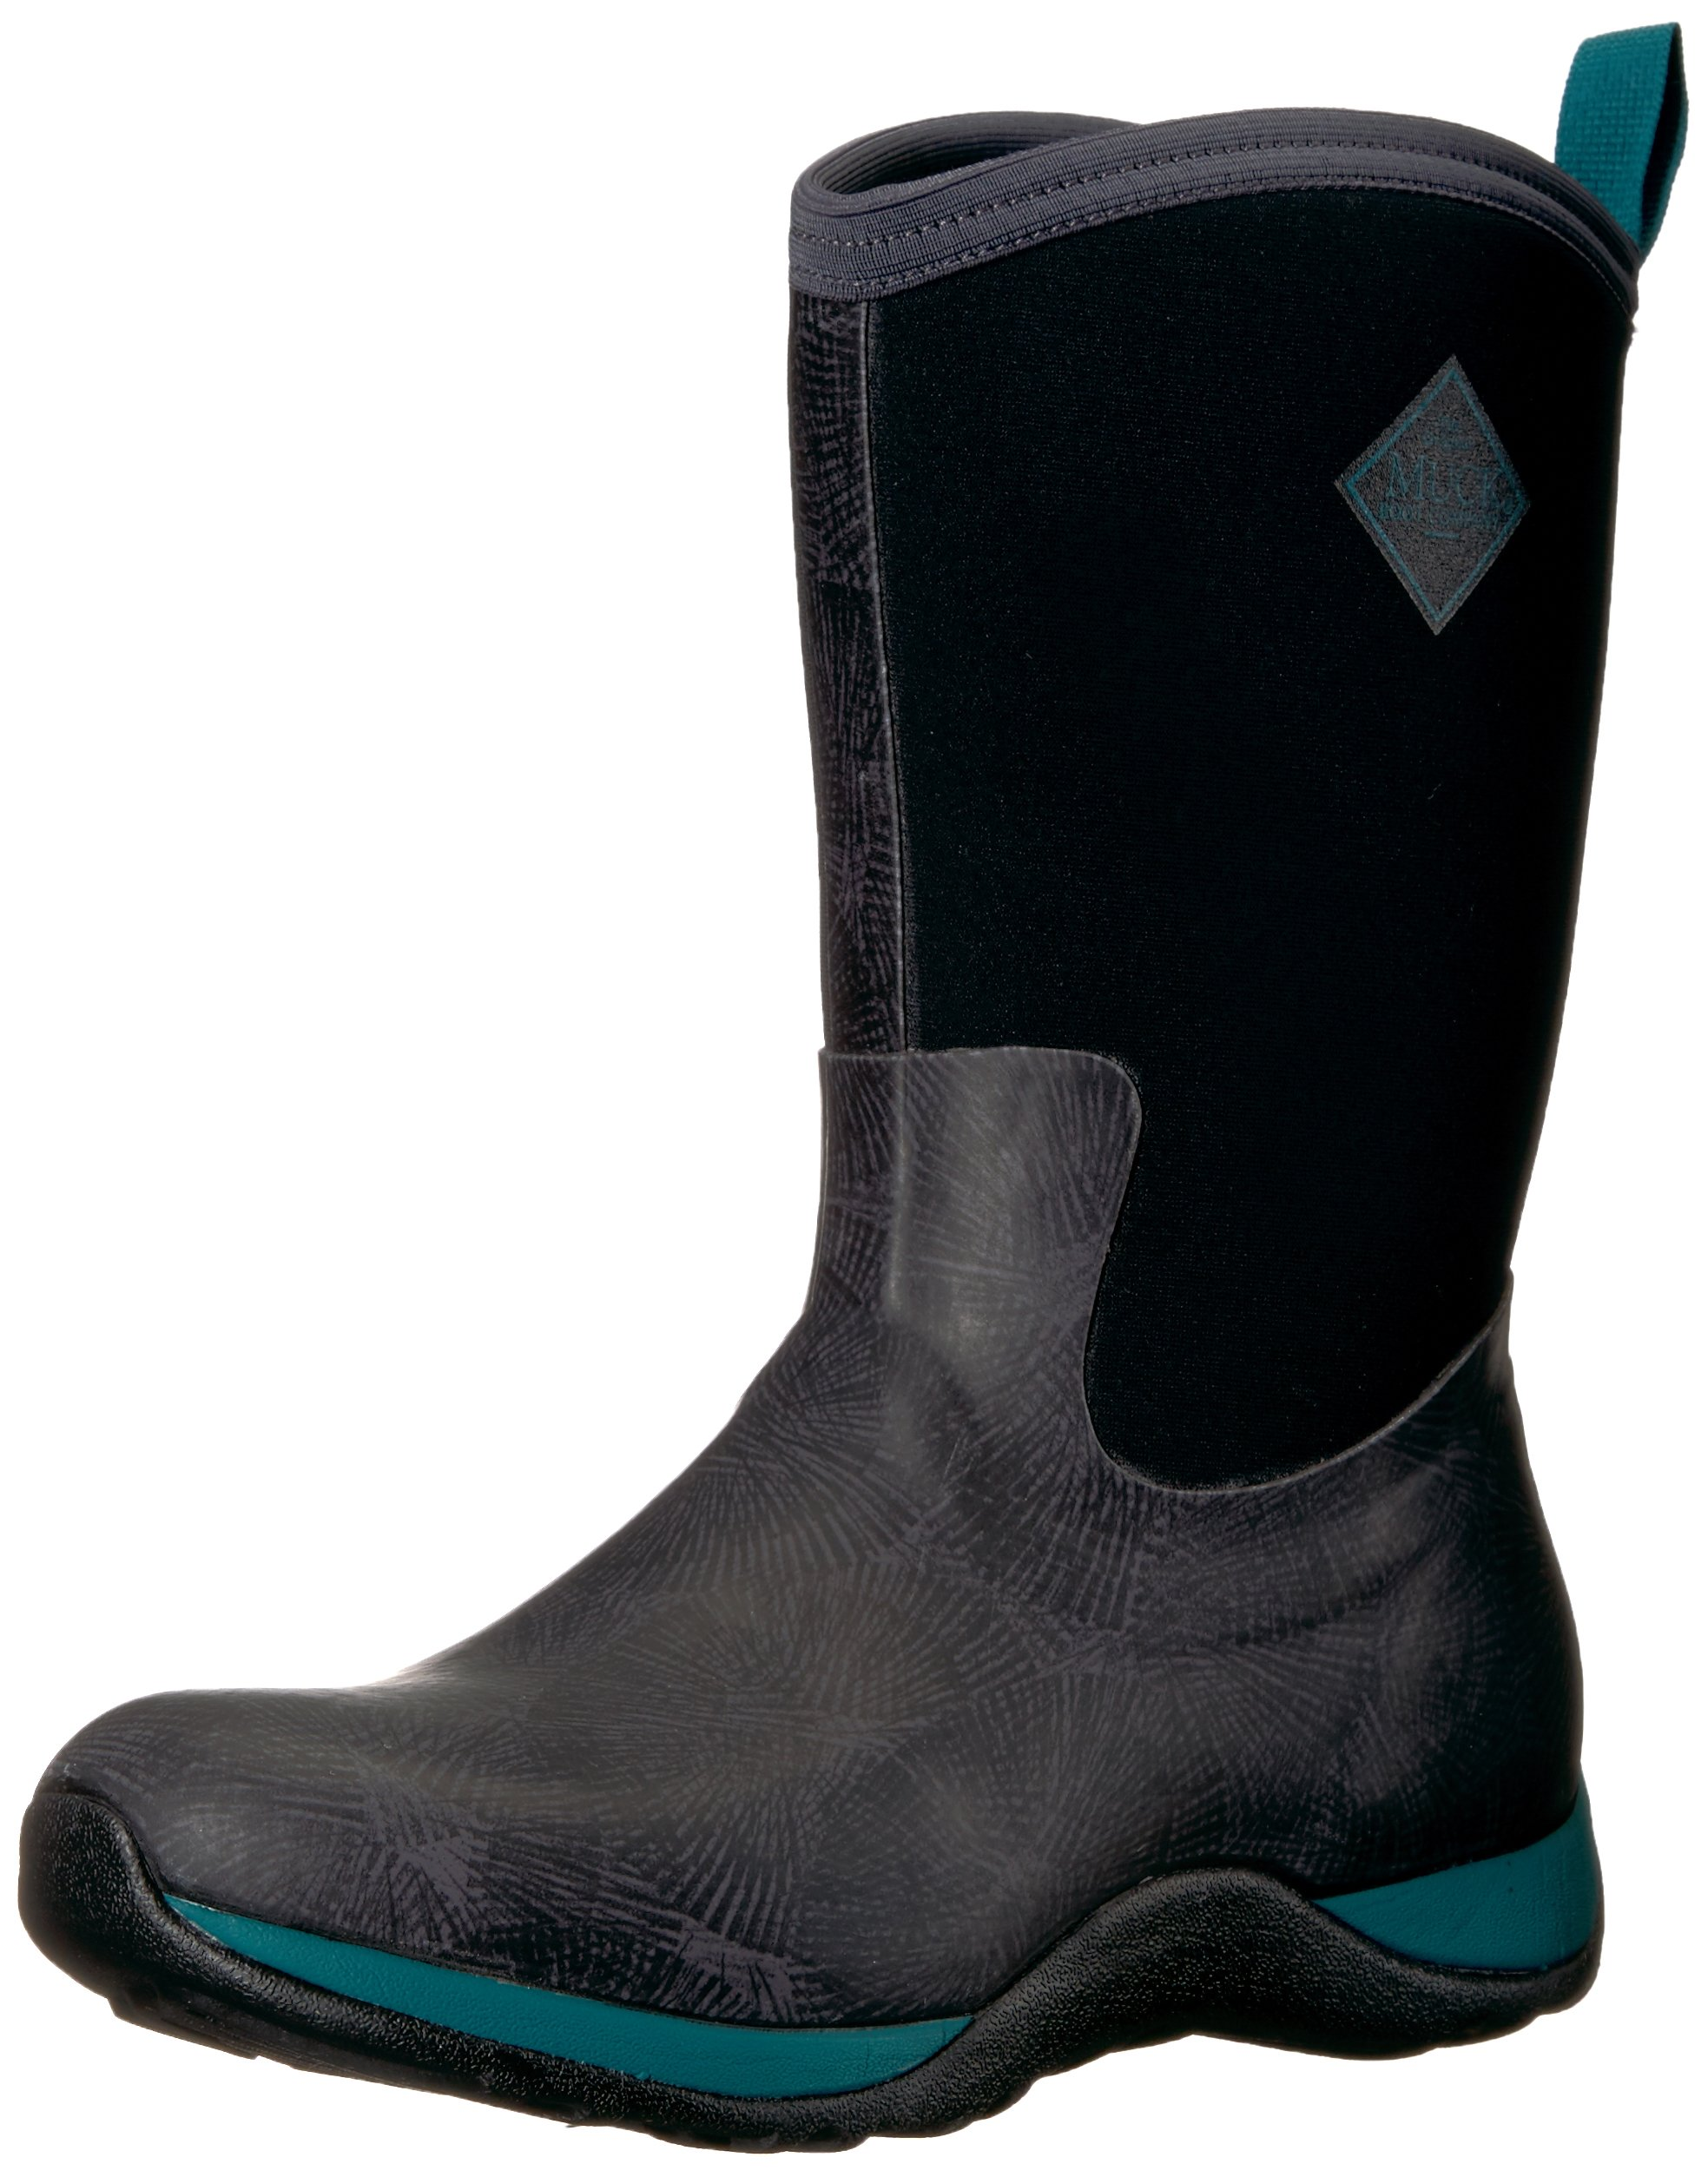 Muck Boot Women's Arctic Weekend Print Work Boot, Black, Gray, Spruce/Spiral, 8 M US by Muck Boot